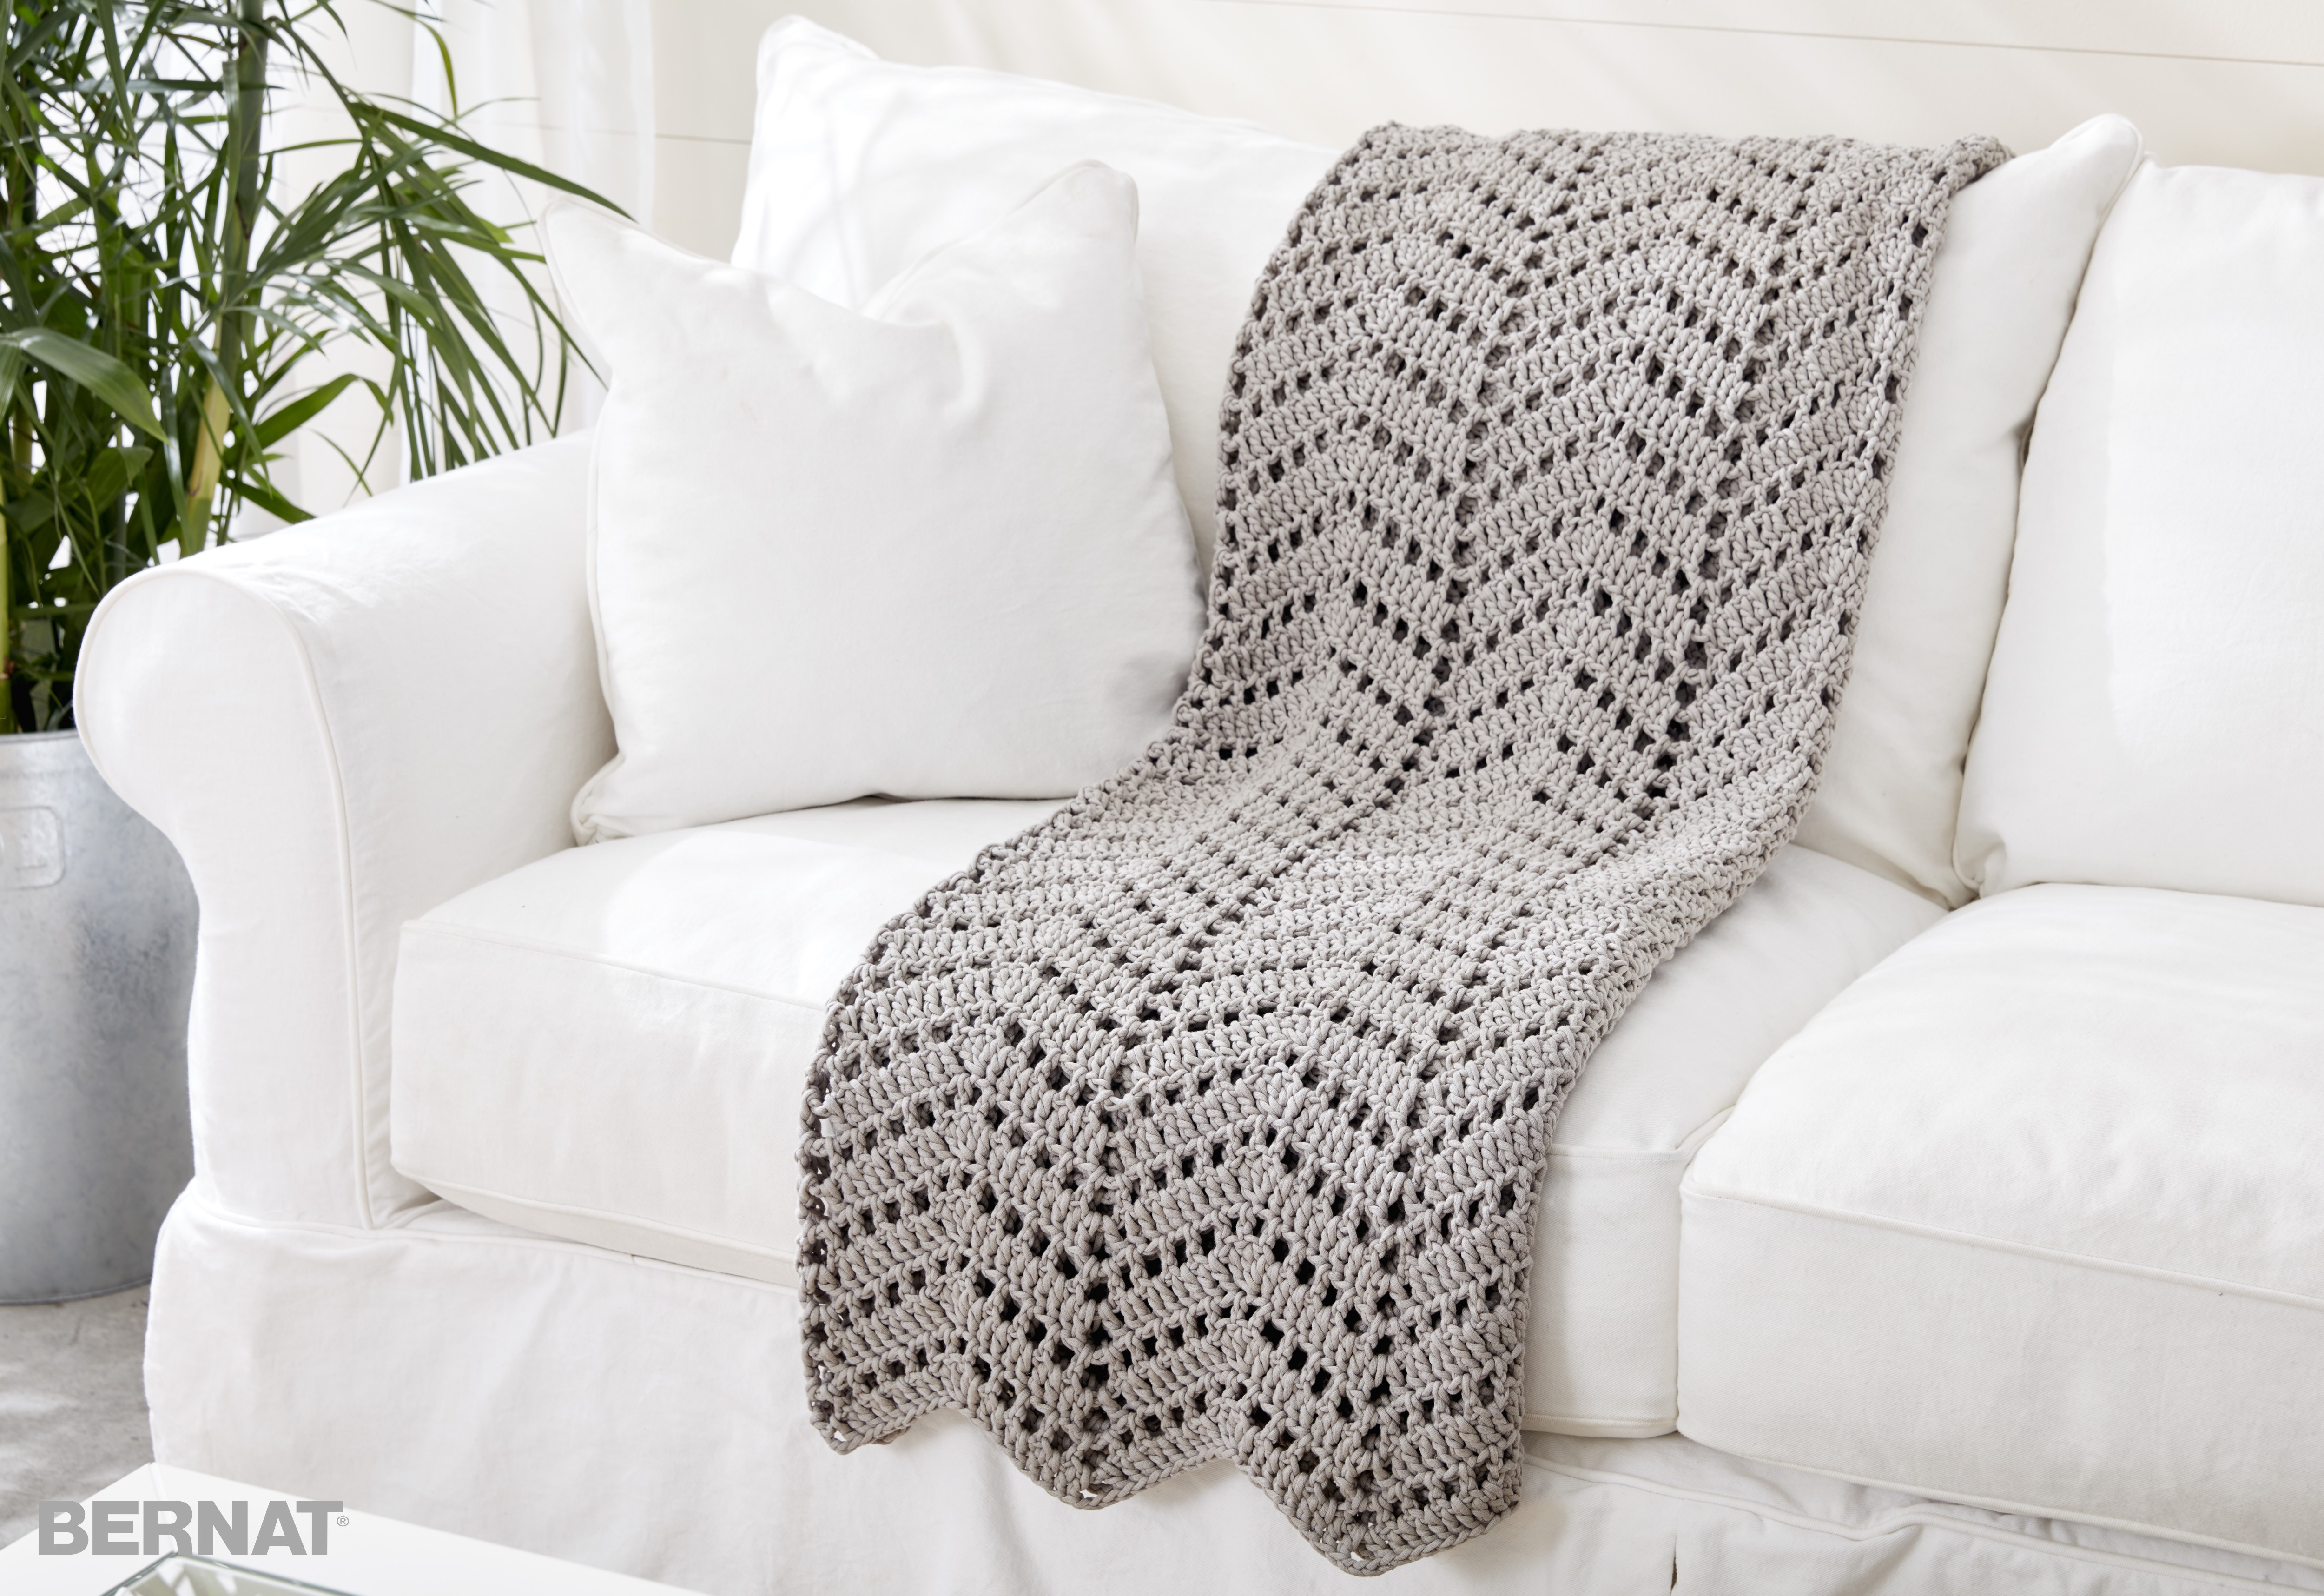 Bernat Ripples In The Sand Crochet Afghan Crochet Pattern